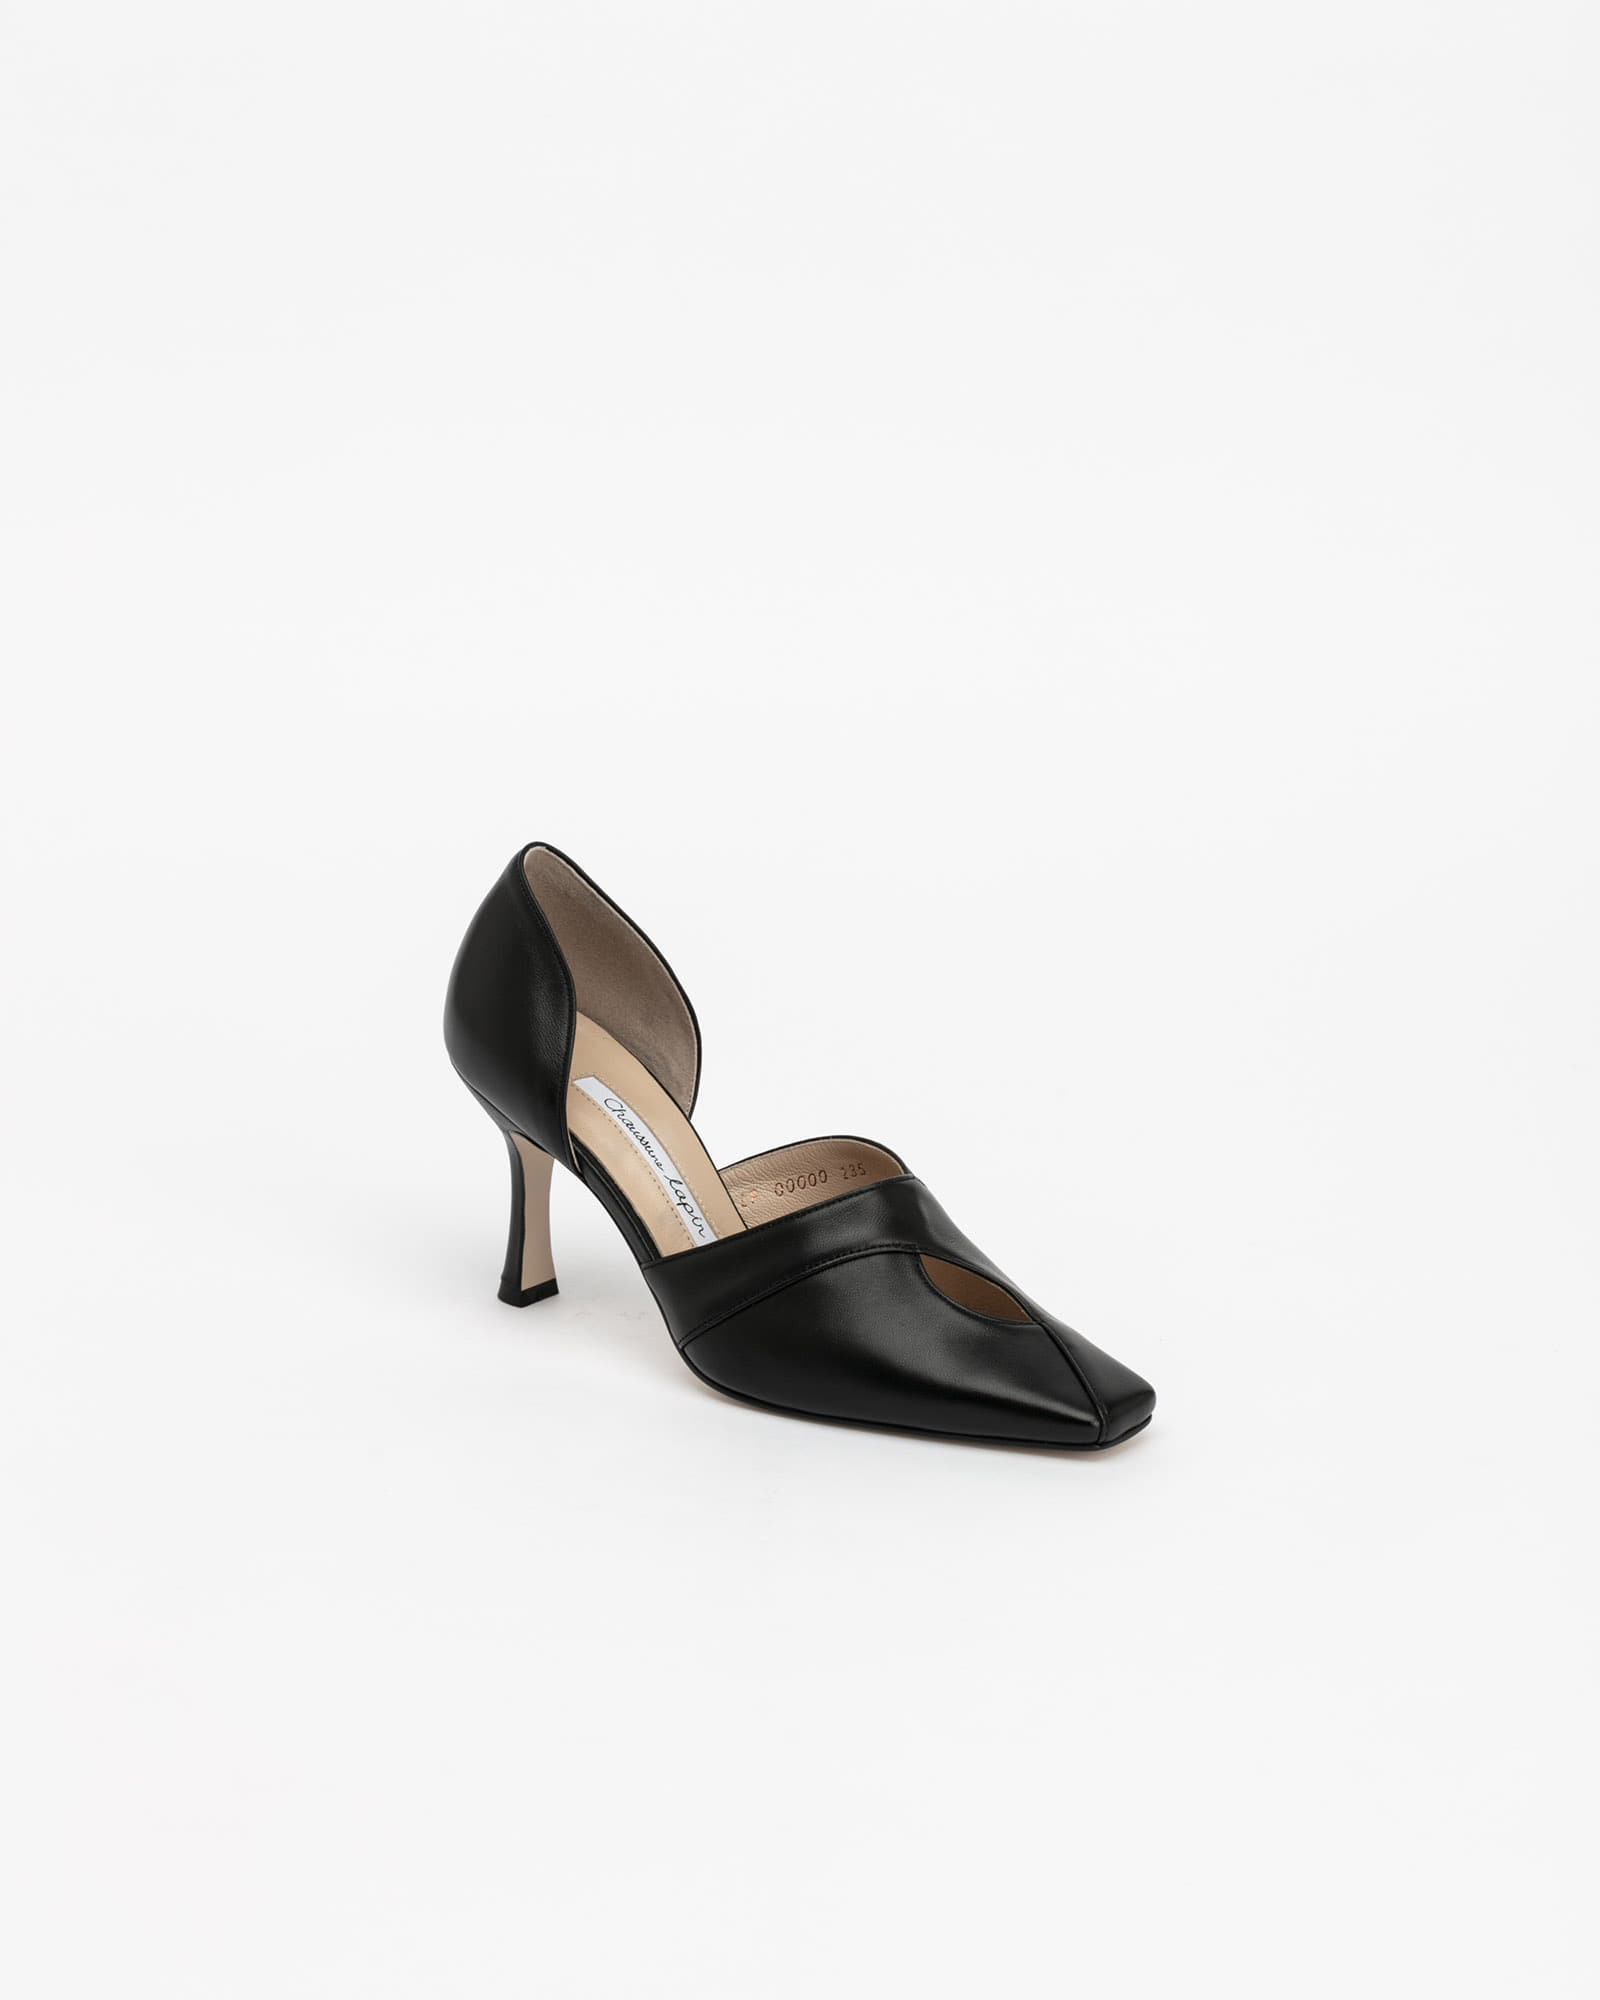 LeBon Pumps in Black